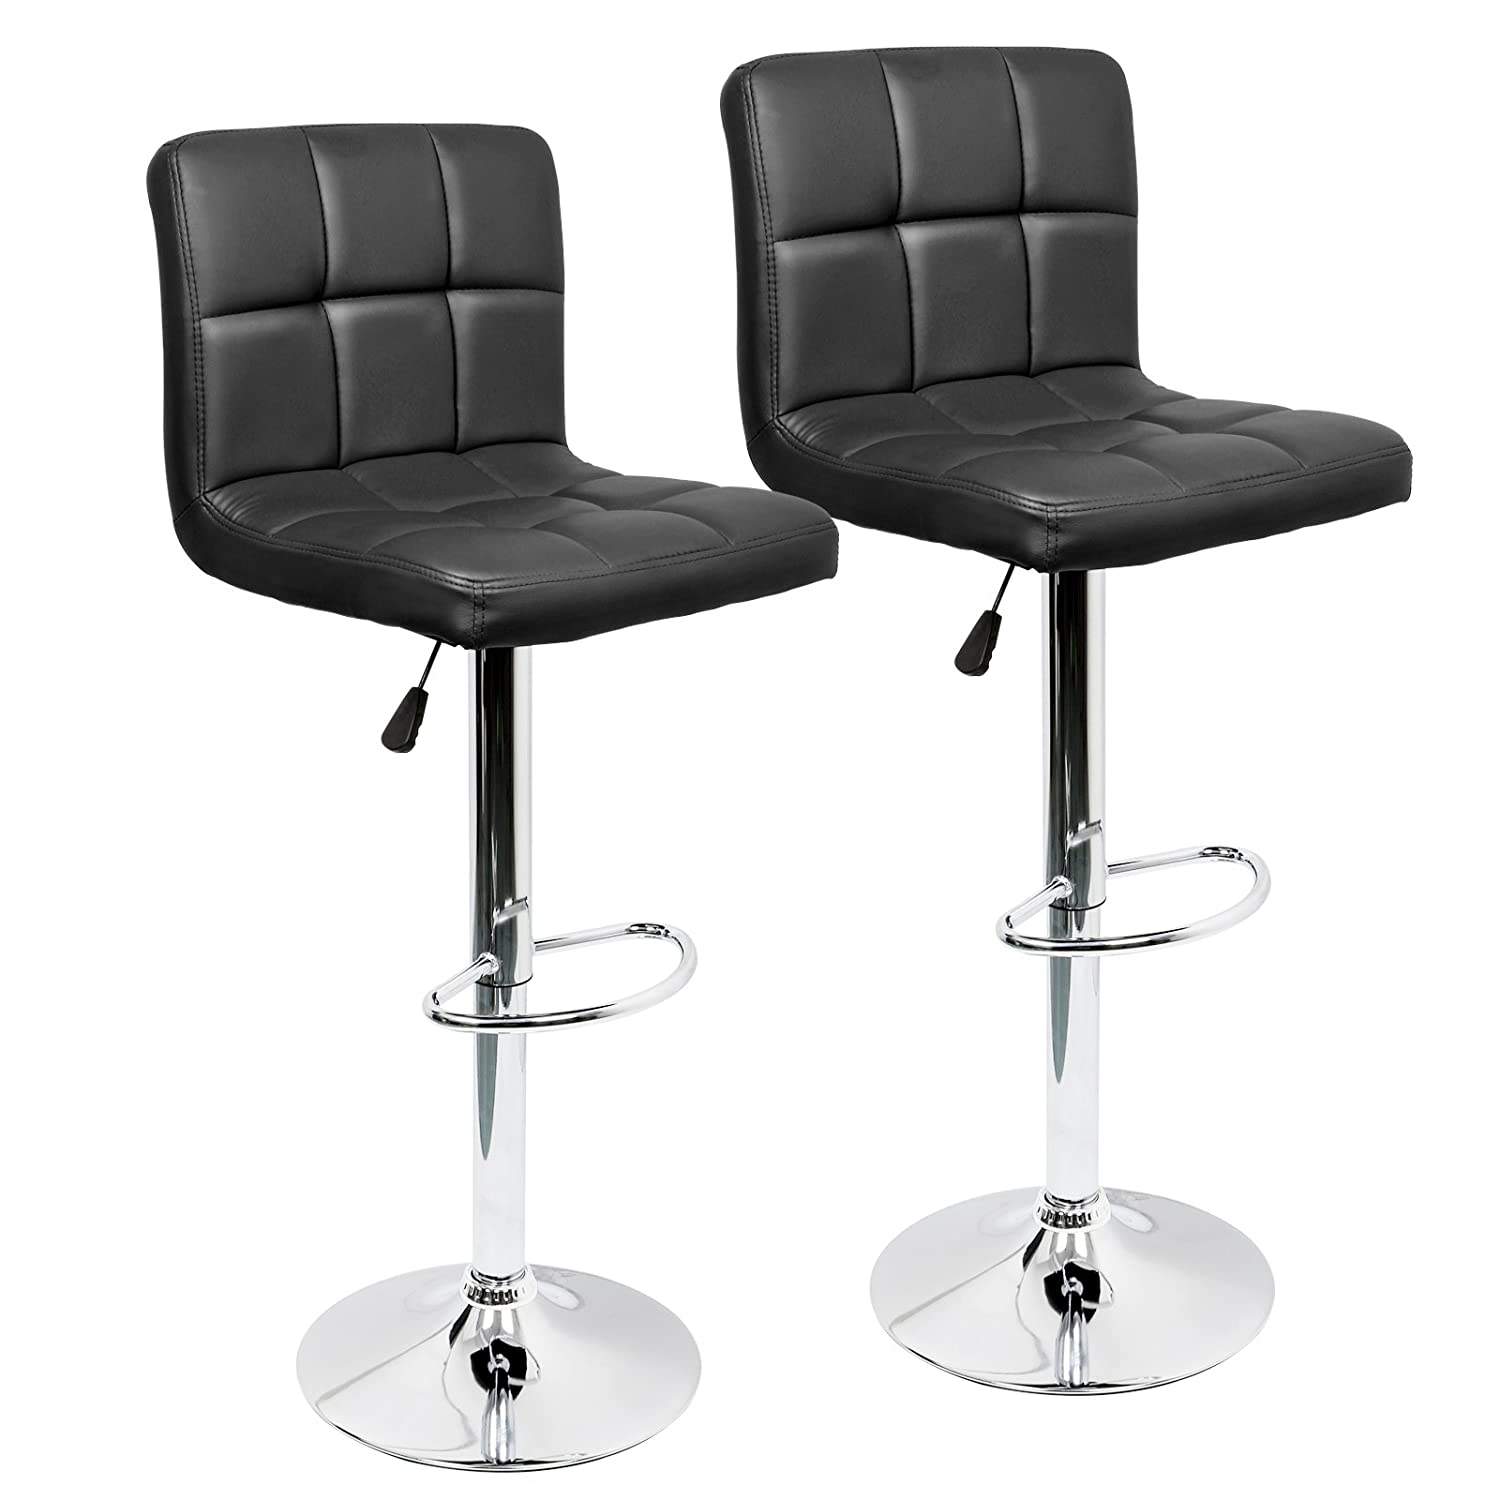 Rotating Lifting Chair The Back Of A Chair Stool Hairdressing Chair Fast Deliver The Bar Chair. Clear And Distinctive